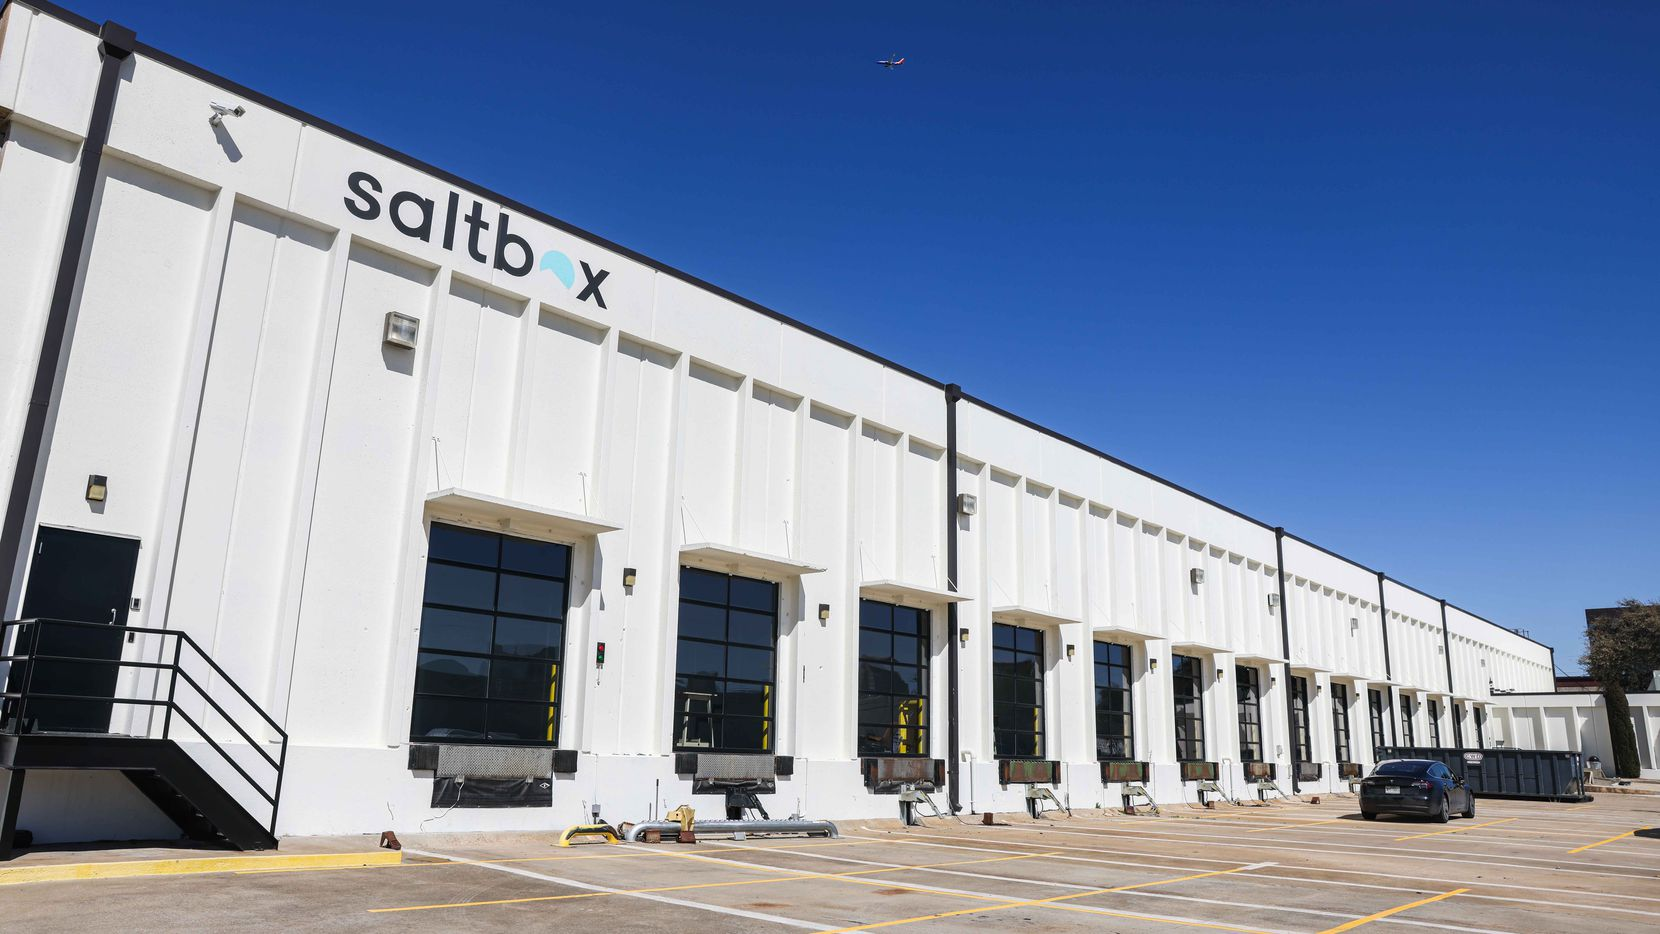 SaltBox offers warehouse space, mostly for small independent businesses, plus shipping services and even a photo studio in Farmers Branch. (Lola Gomez/The Dallas Morning News)